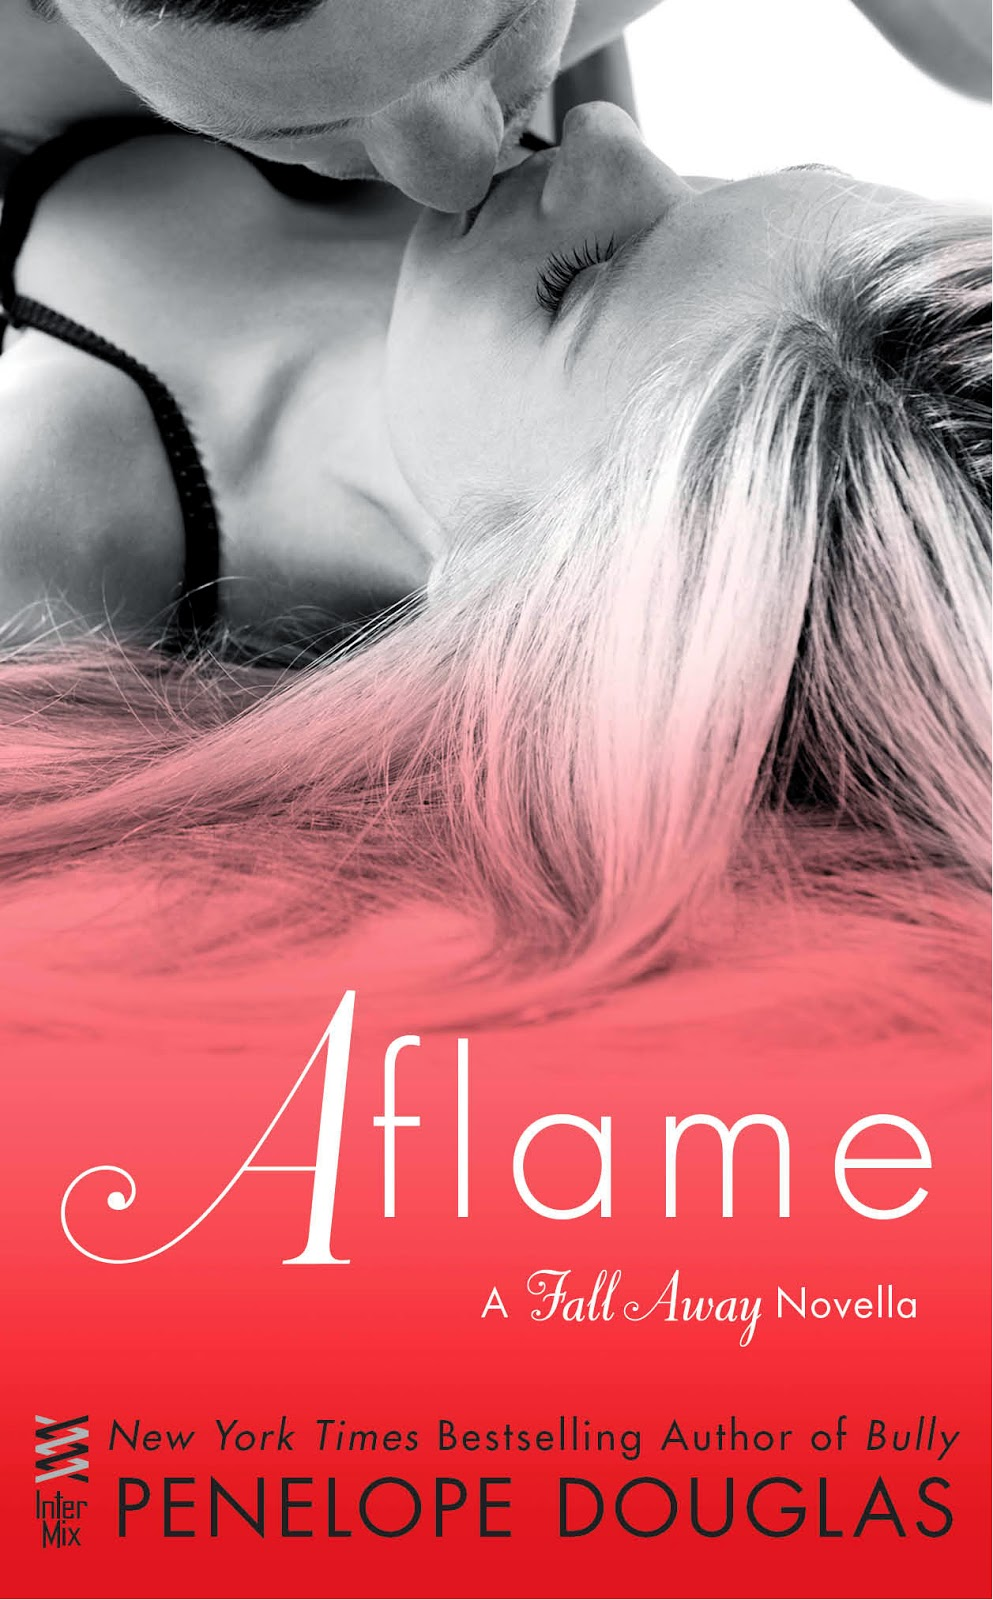 https://www.goodreads.com/book/show/23437291-aflame